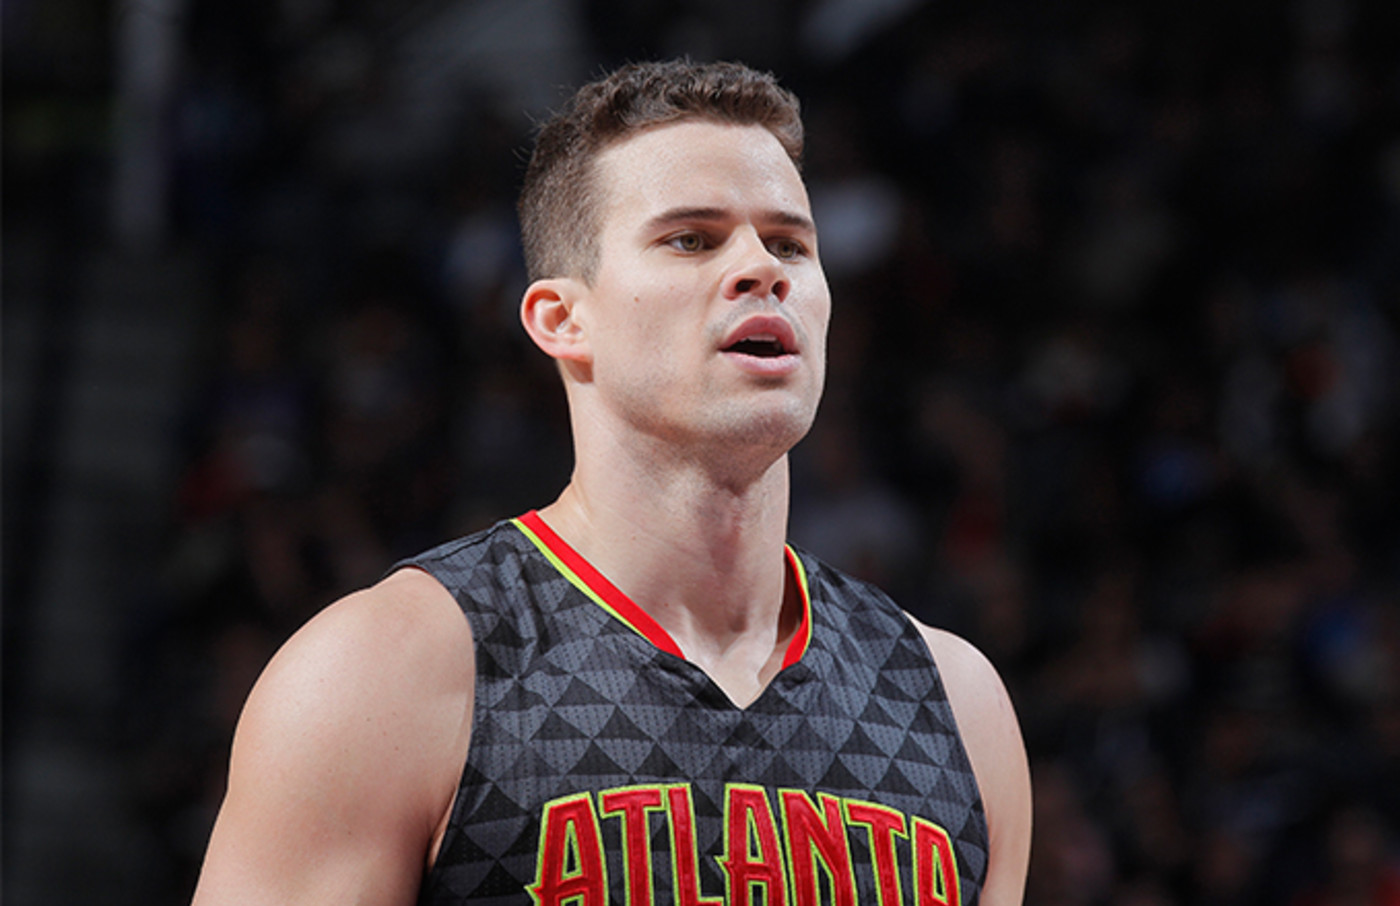 This is a photo of Kris Humphries.